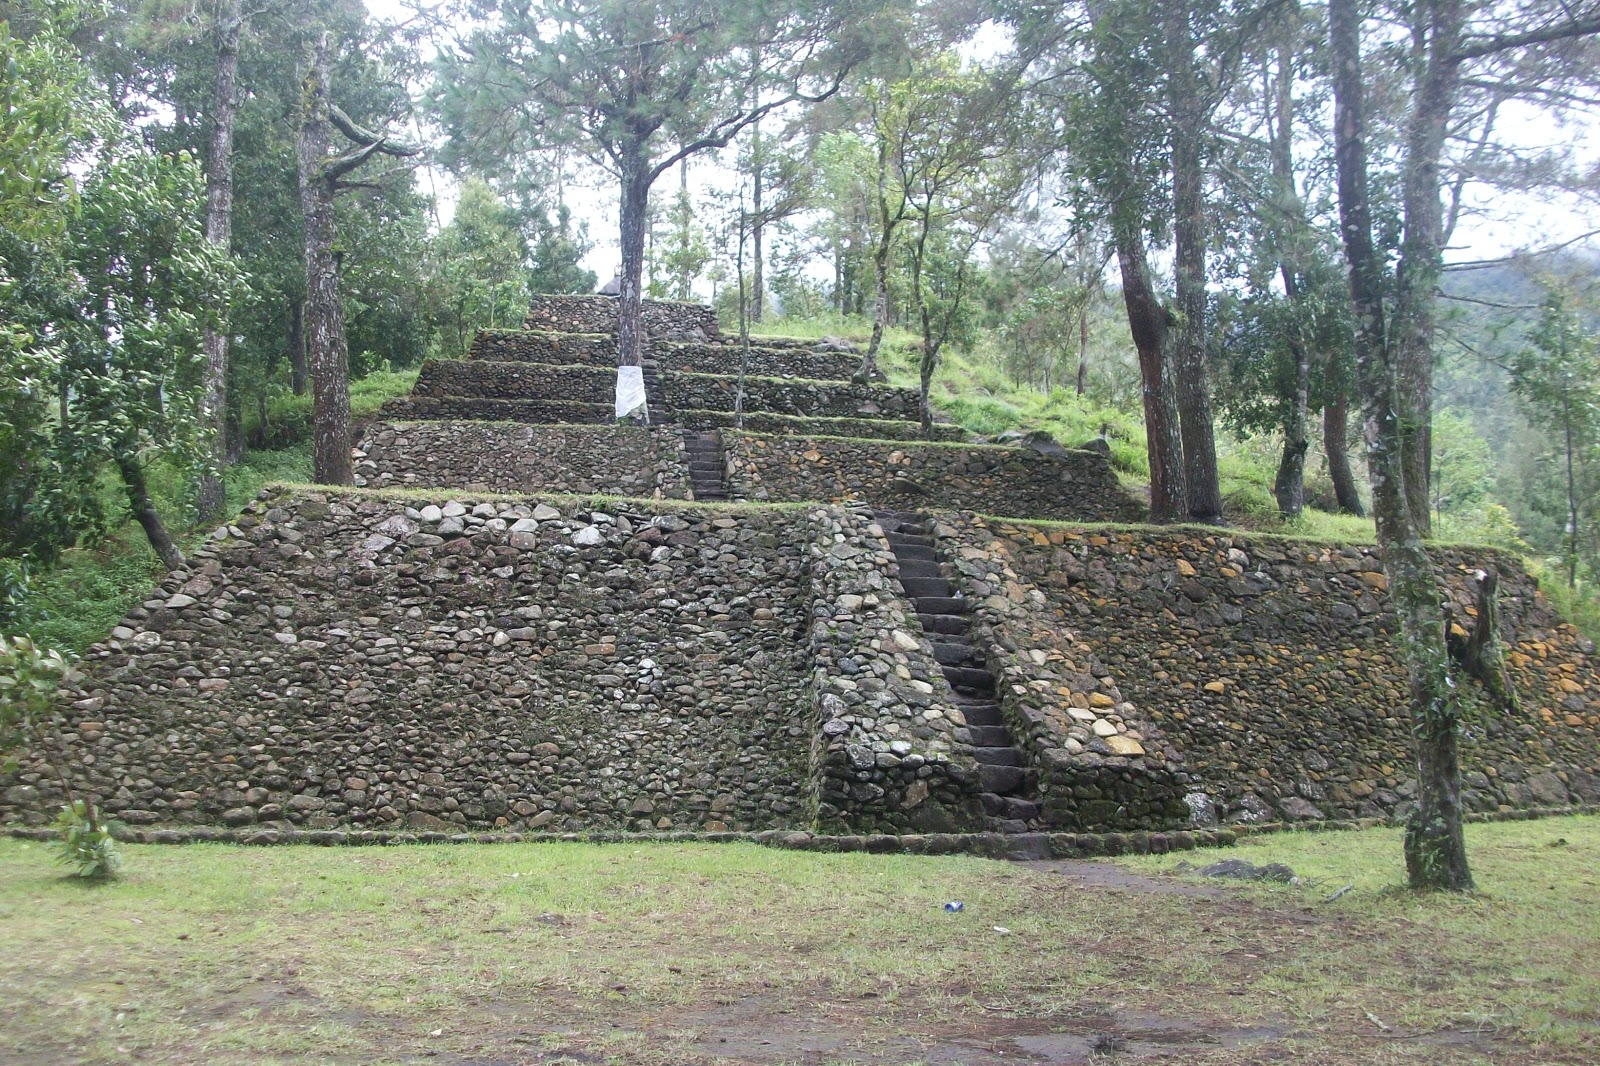 Pyramids in Indonesia - Candi Kethek Central Java